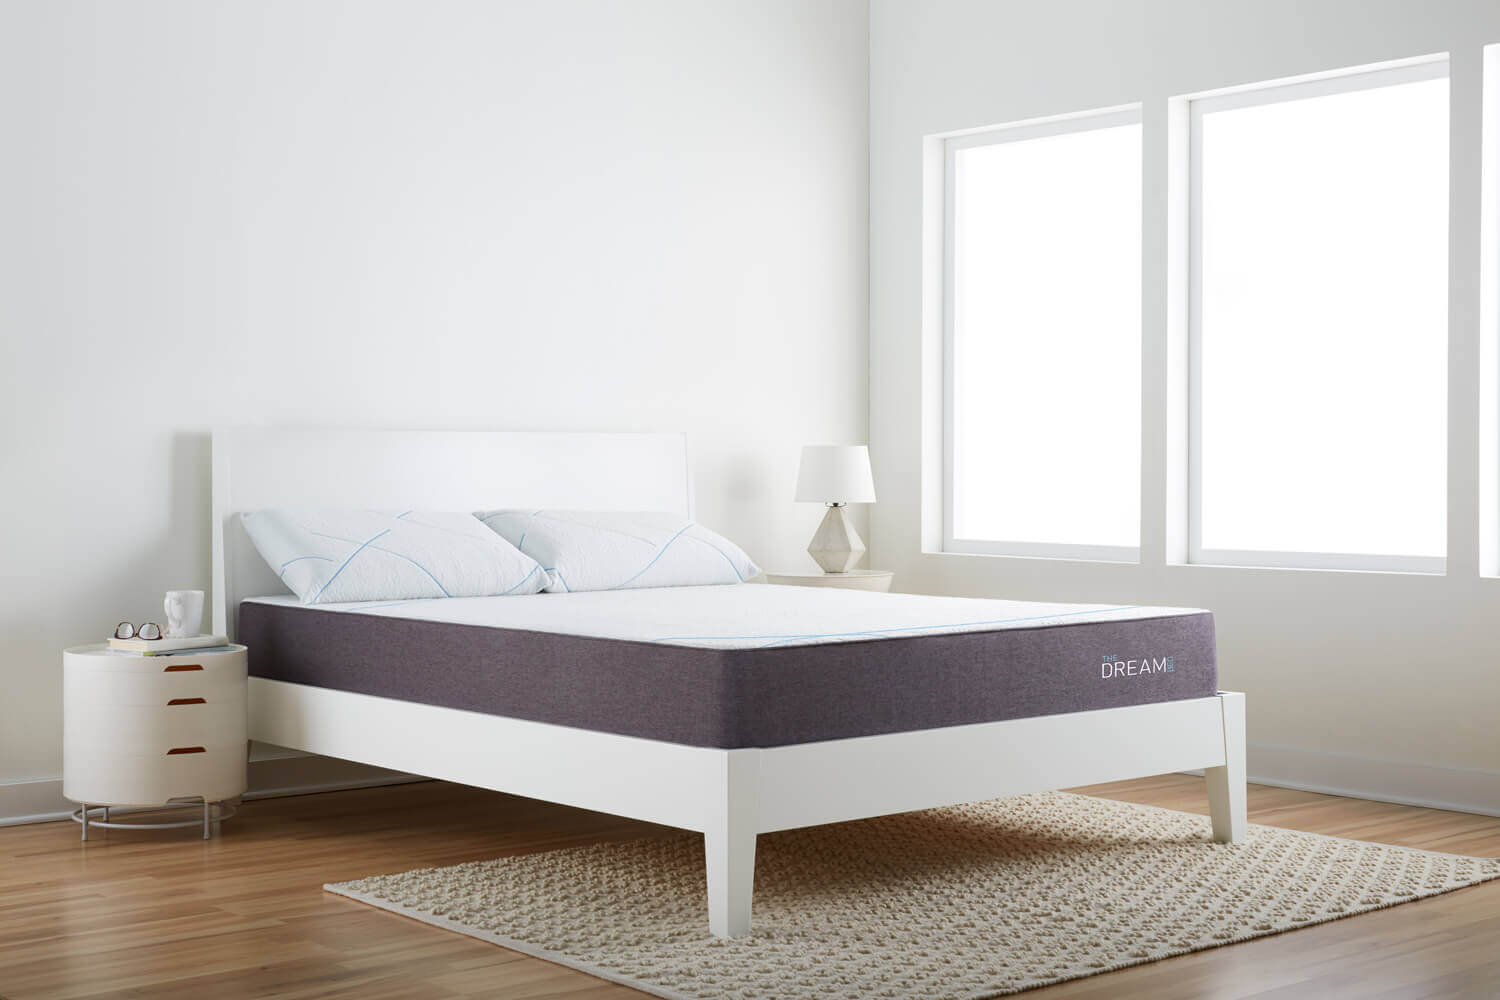 Dream Bed Mattress Review from The Sleep Sherpa